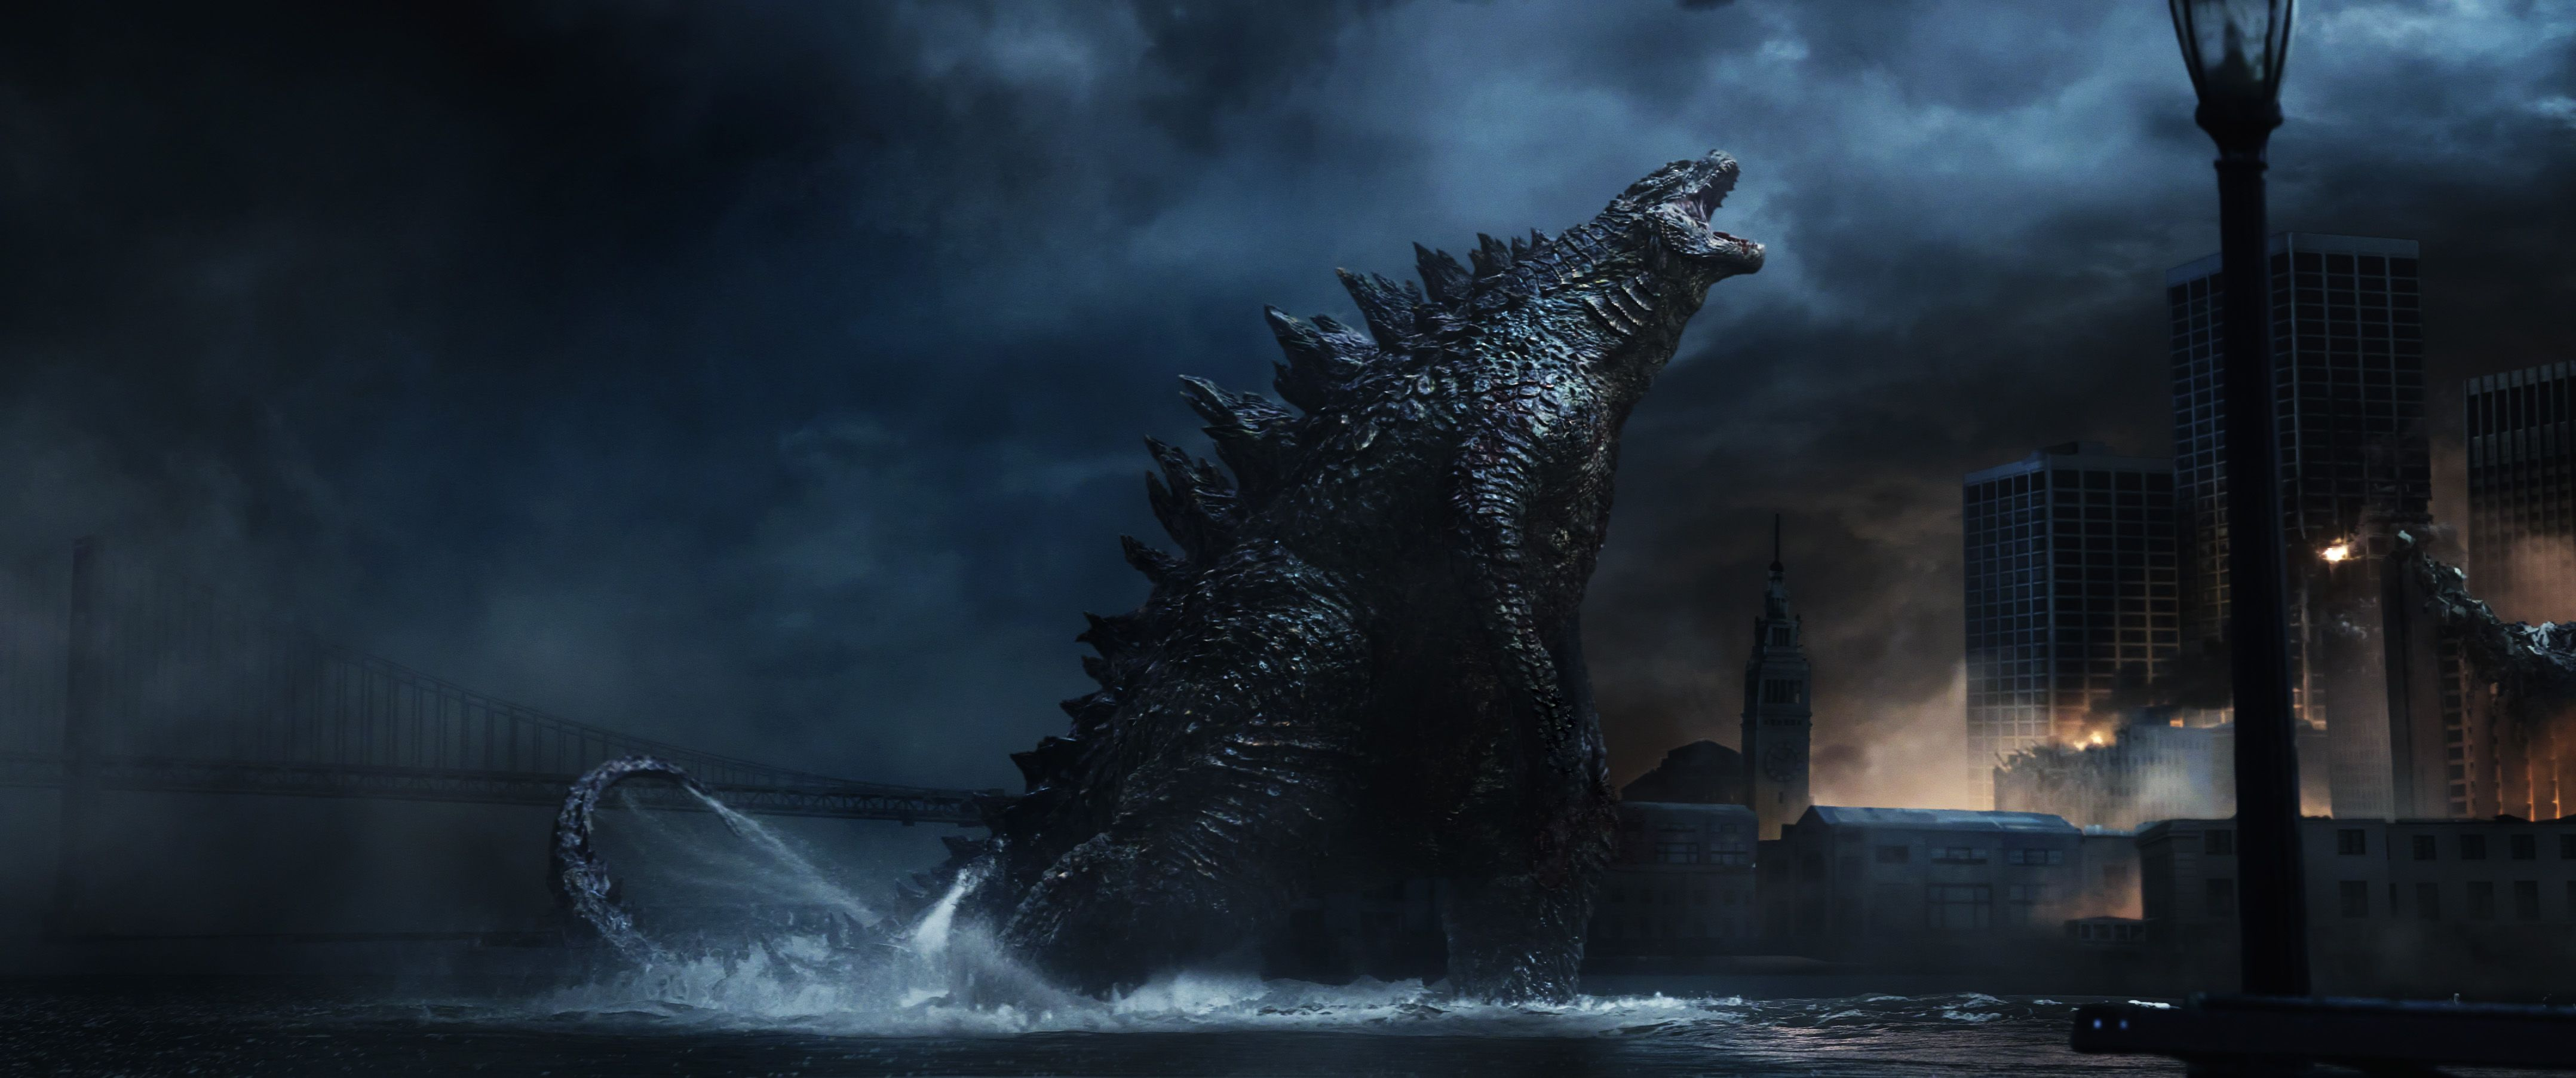 Godzilla 2 Synopsis, Cast Revealed as Filming Begins | Collider